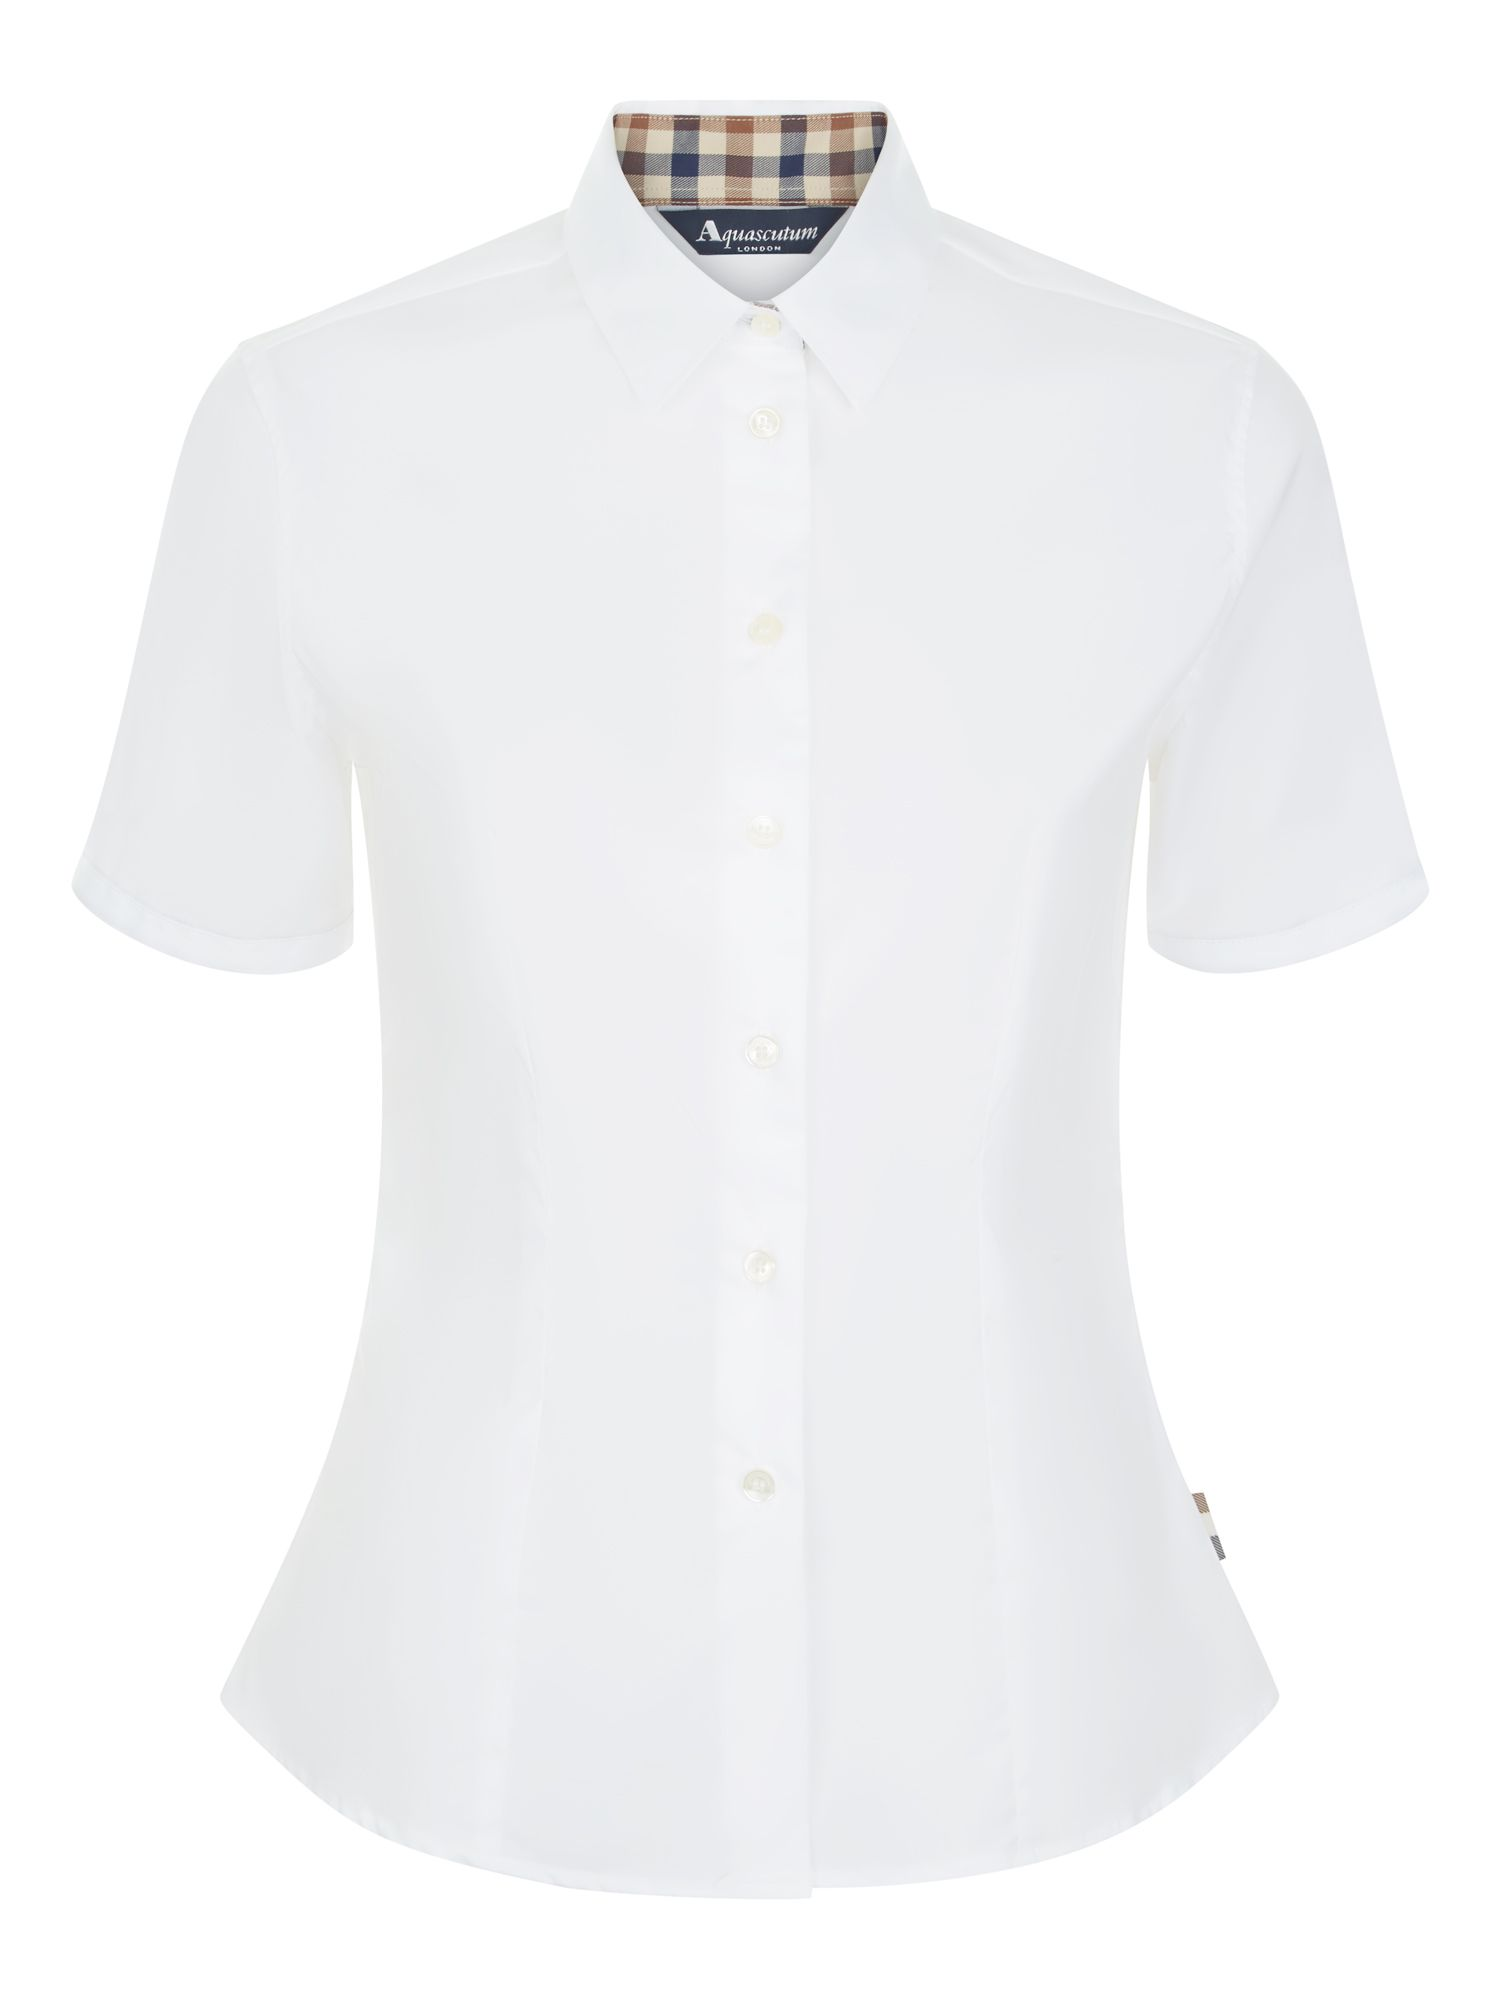 Aquascutum Jade Short Sleeve Shirt, White